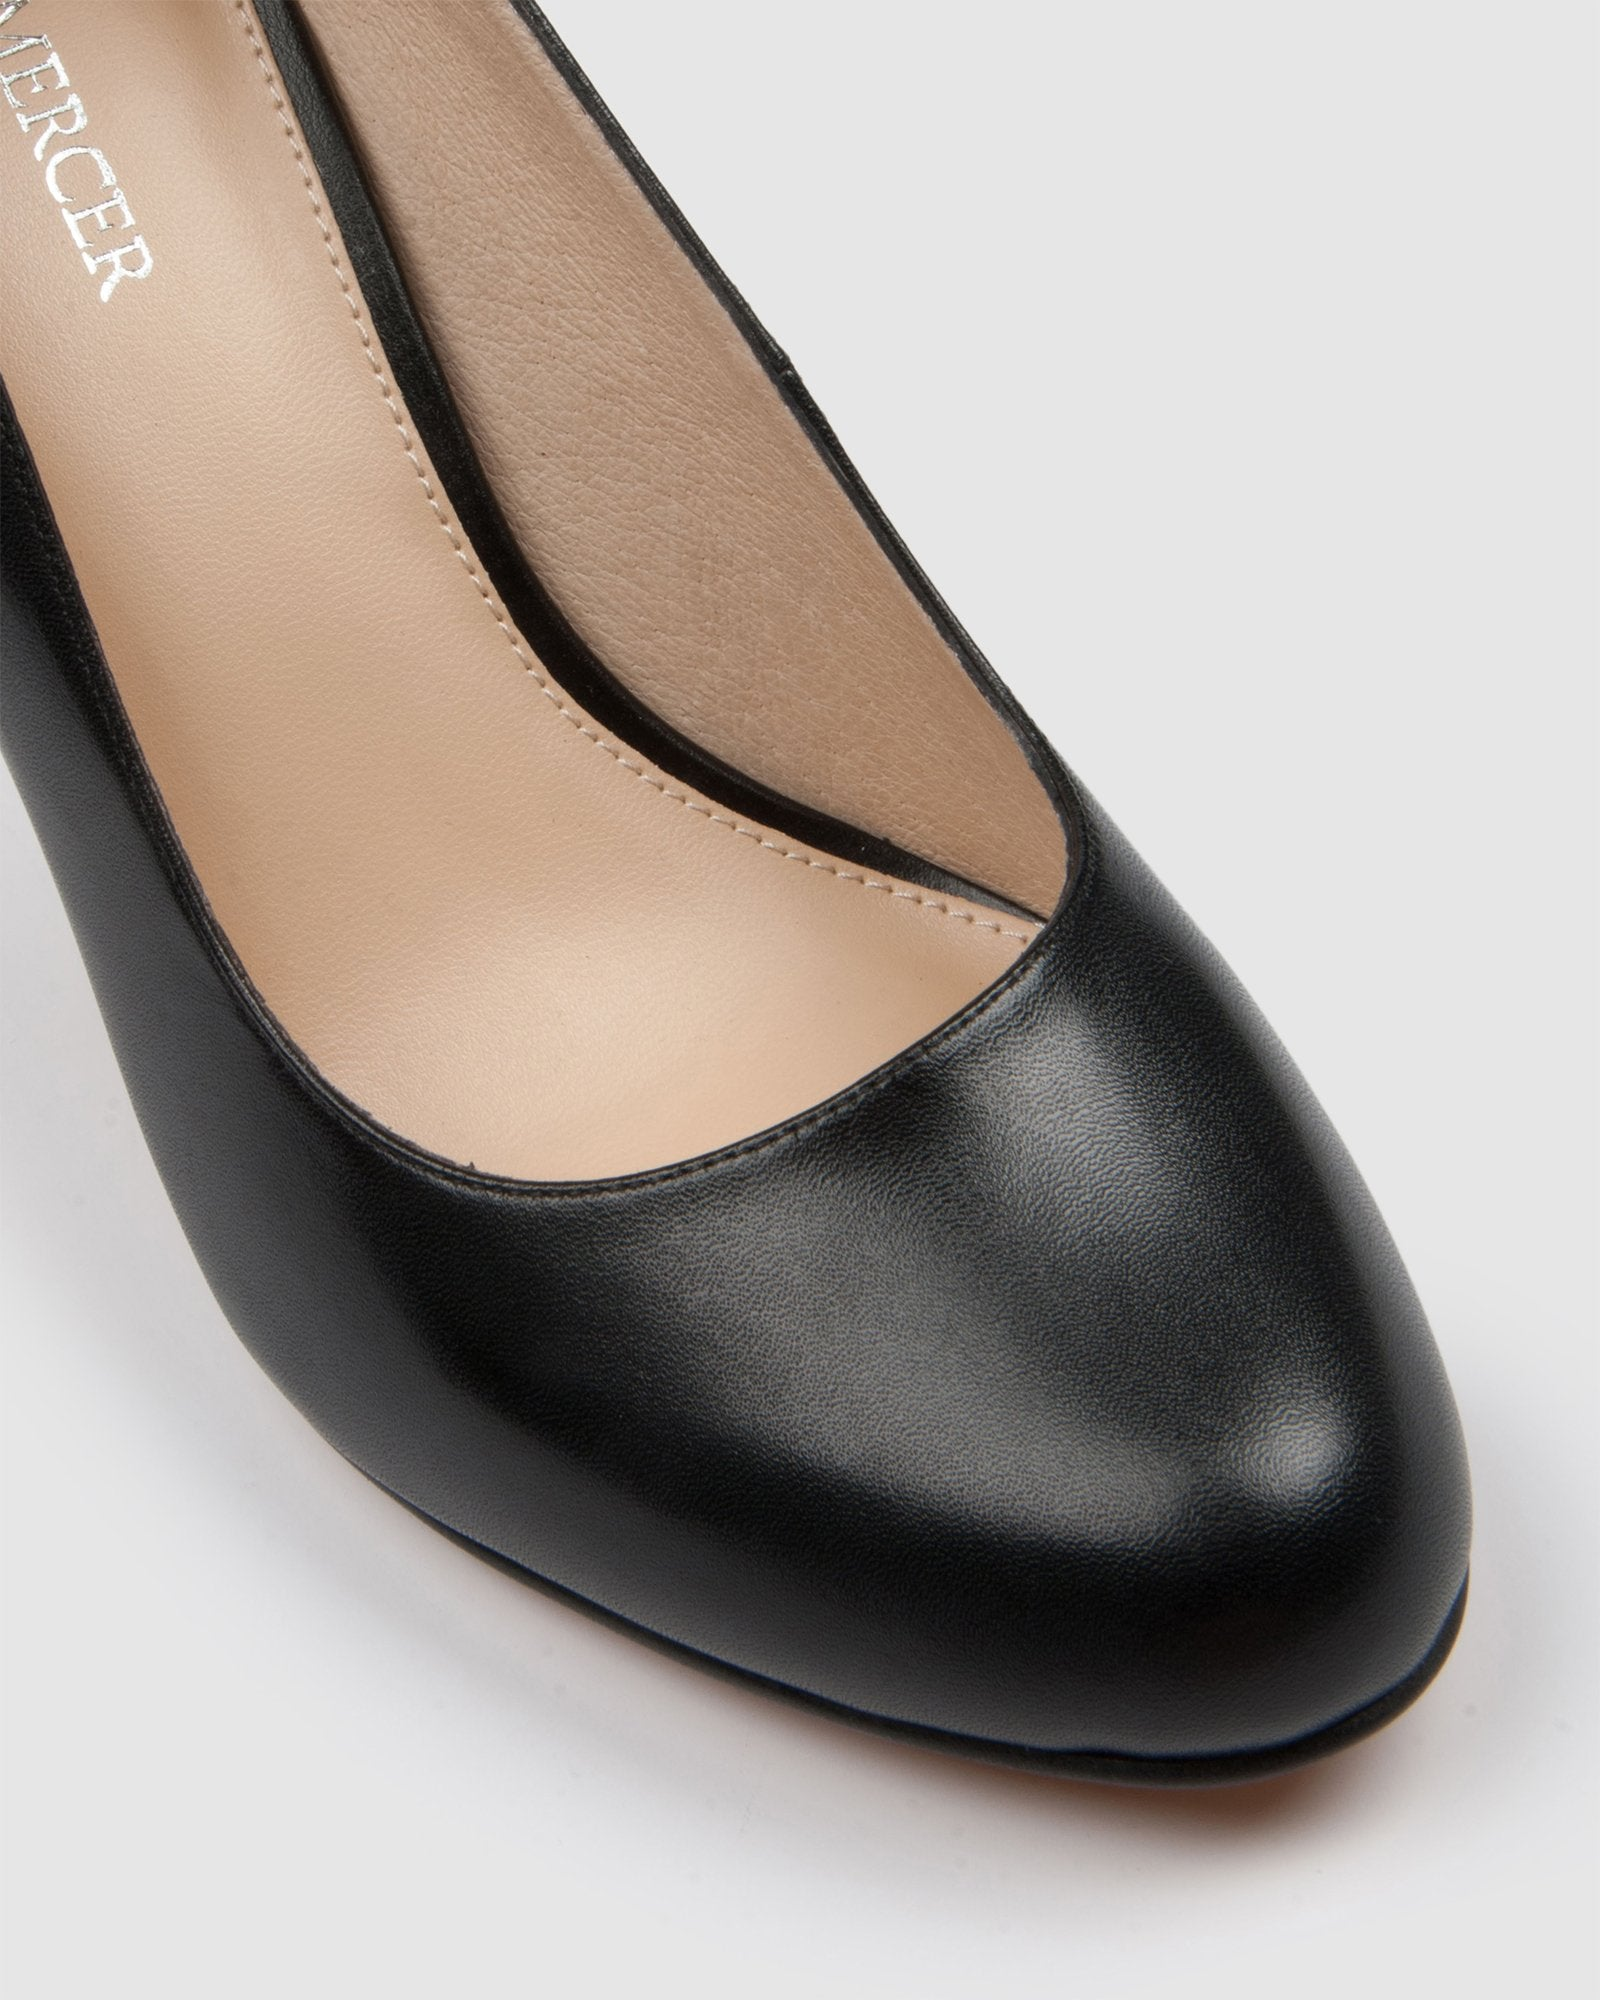 QUIP HIGH HEELS BLACK LEATHER